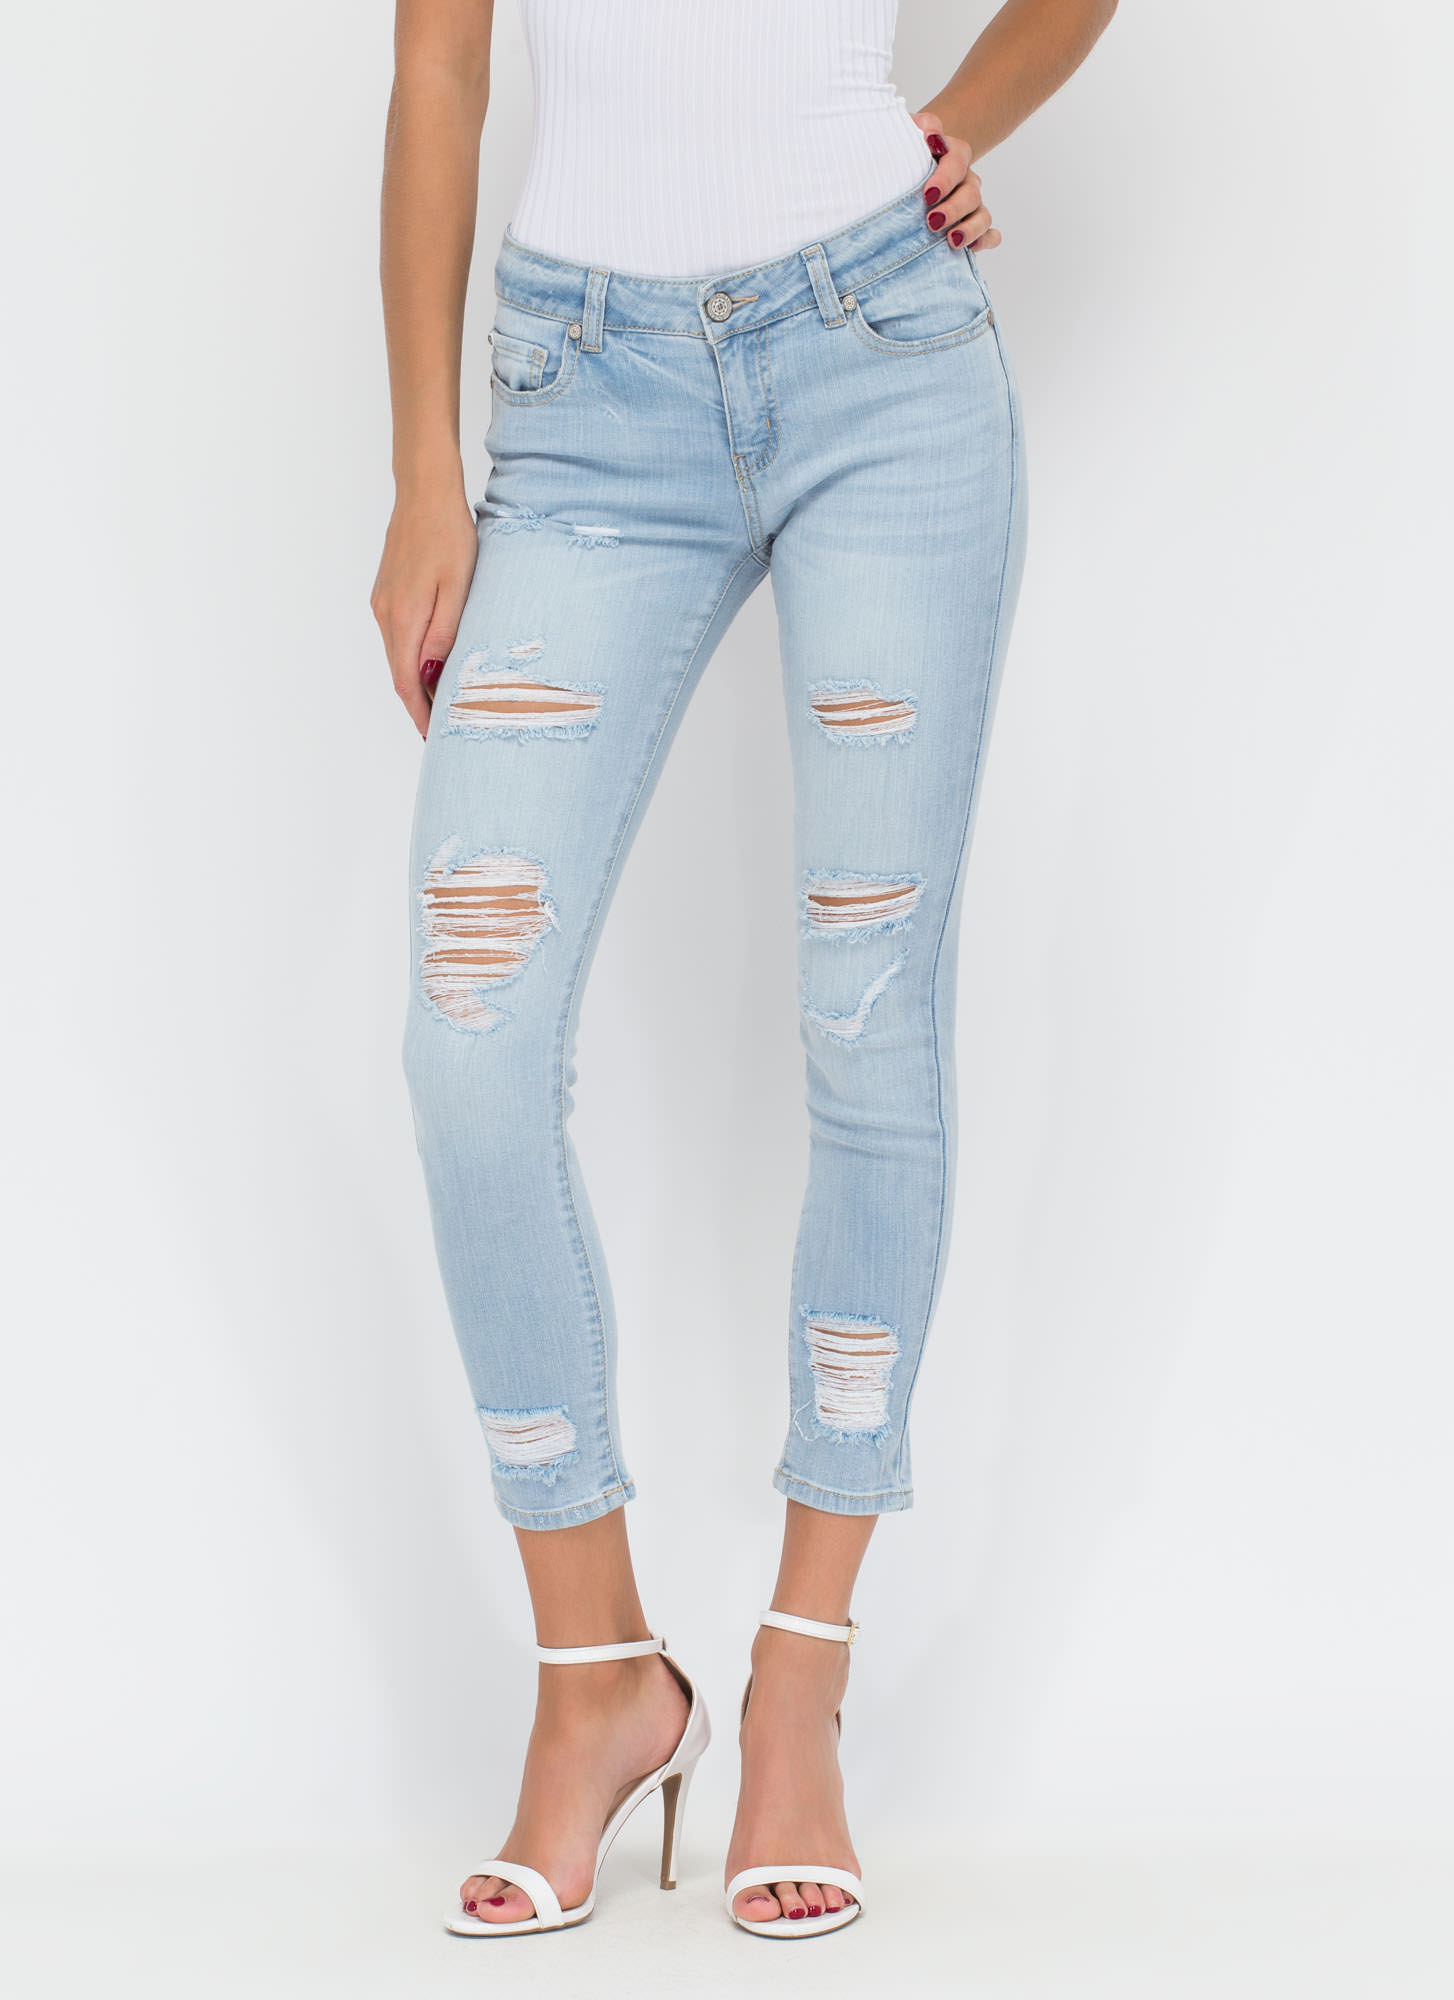 On The Fray Distressed Skinny Jeans LTBLUE